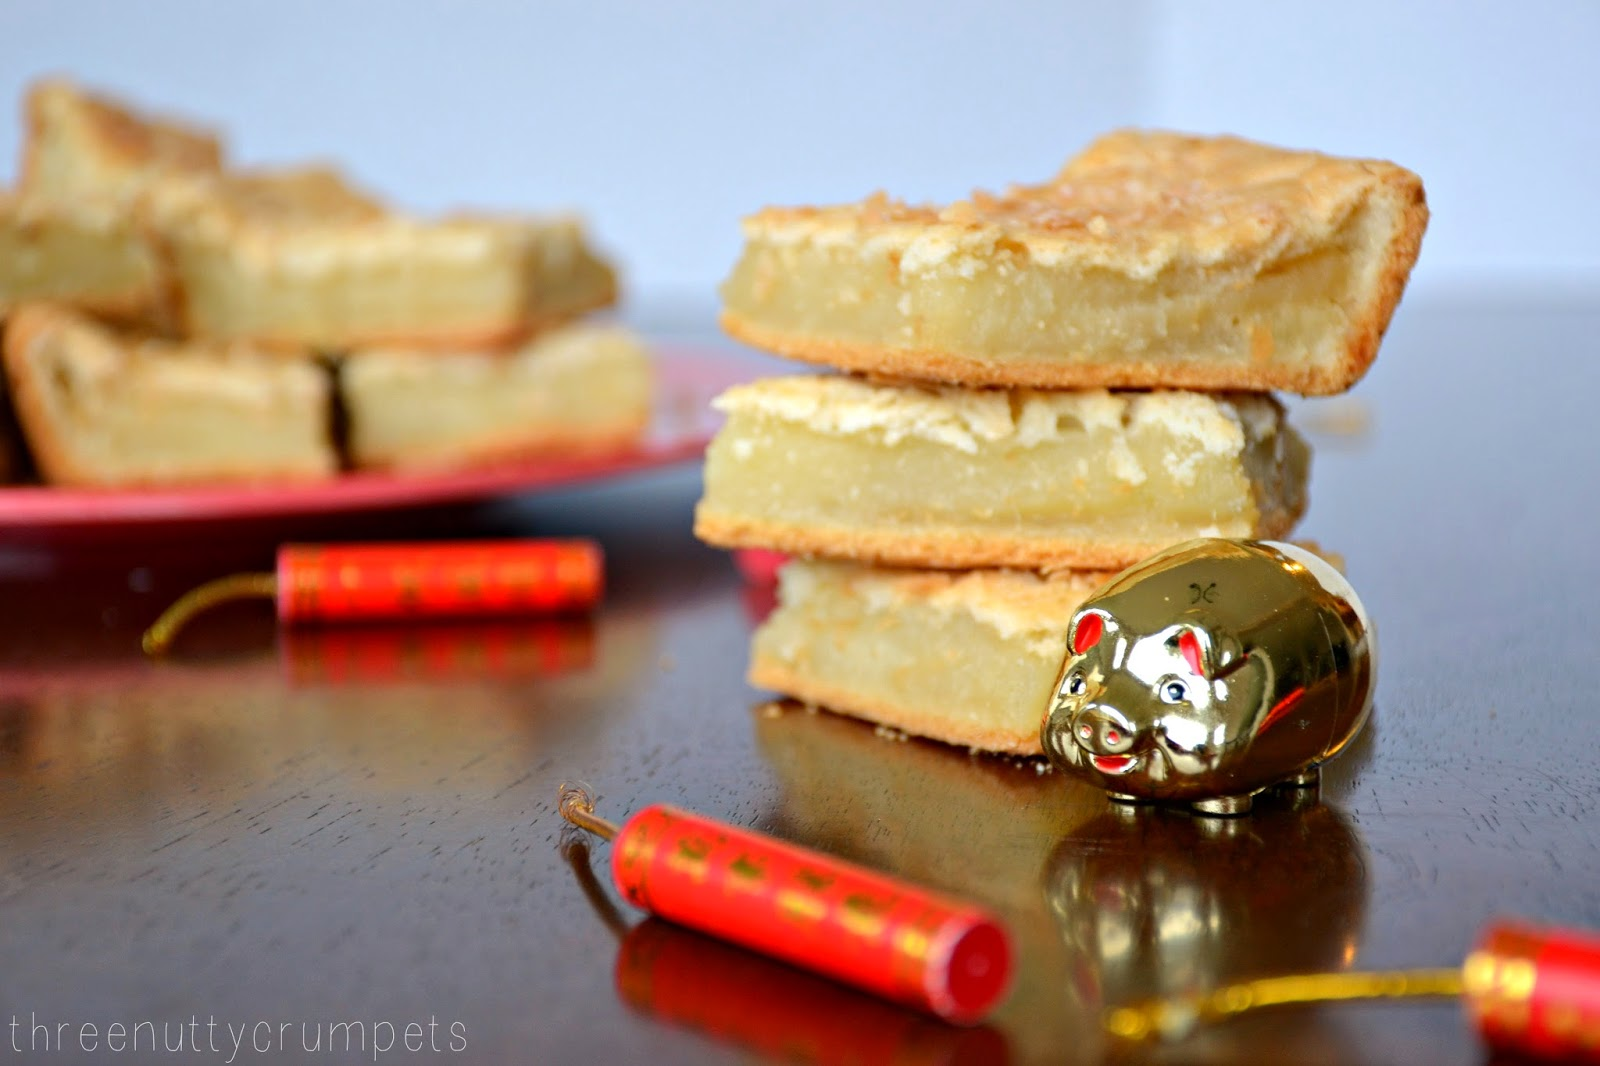 ... Nutty Crumpets: Perfected Baked Coconut Rice Cake 椰汁烤年糕